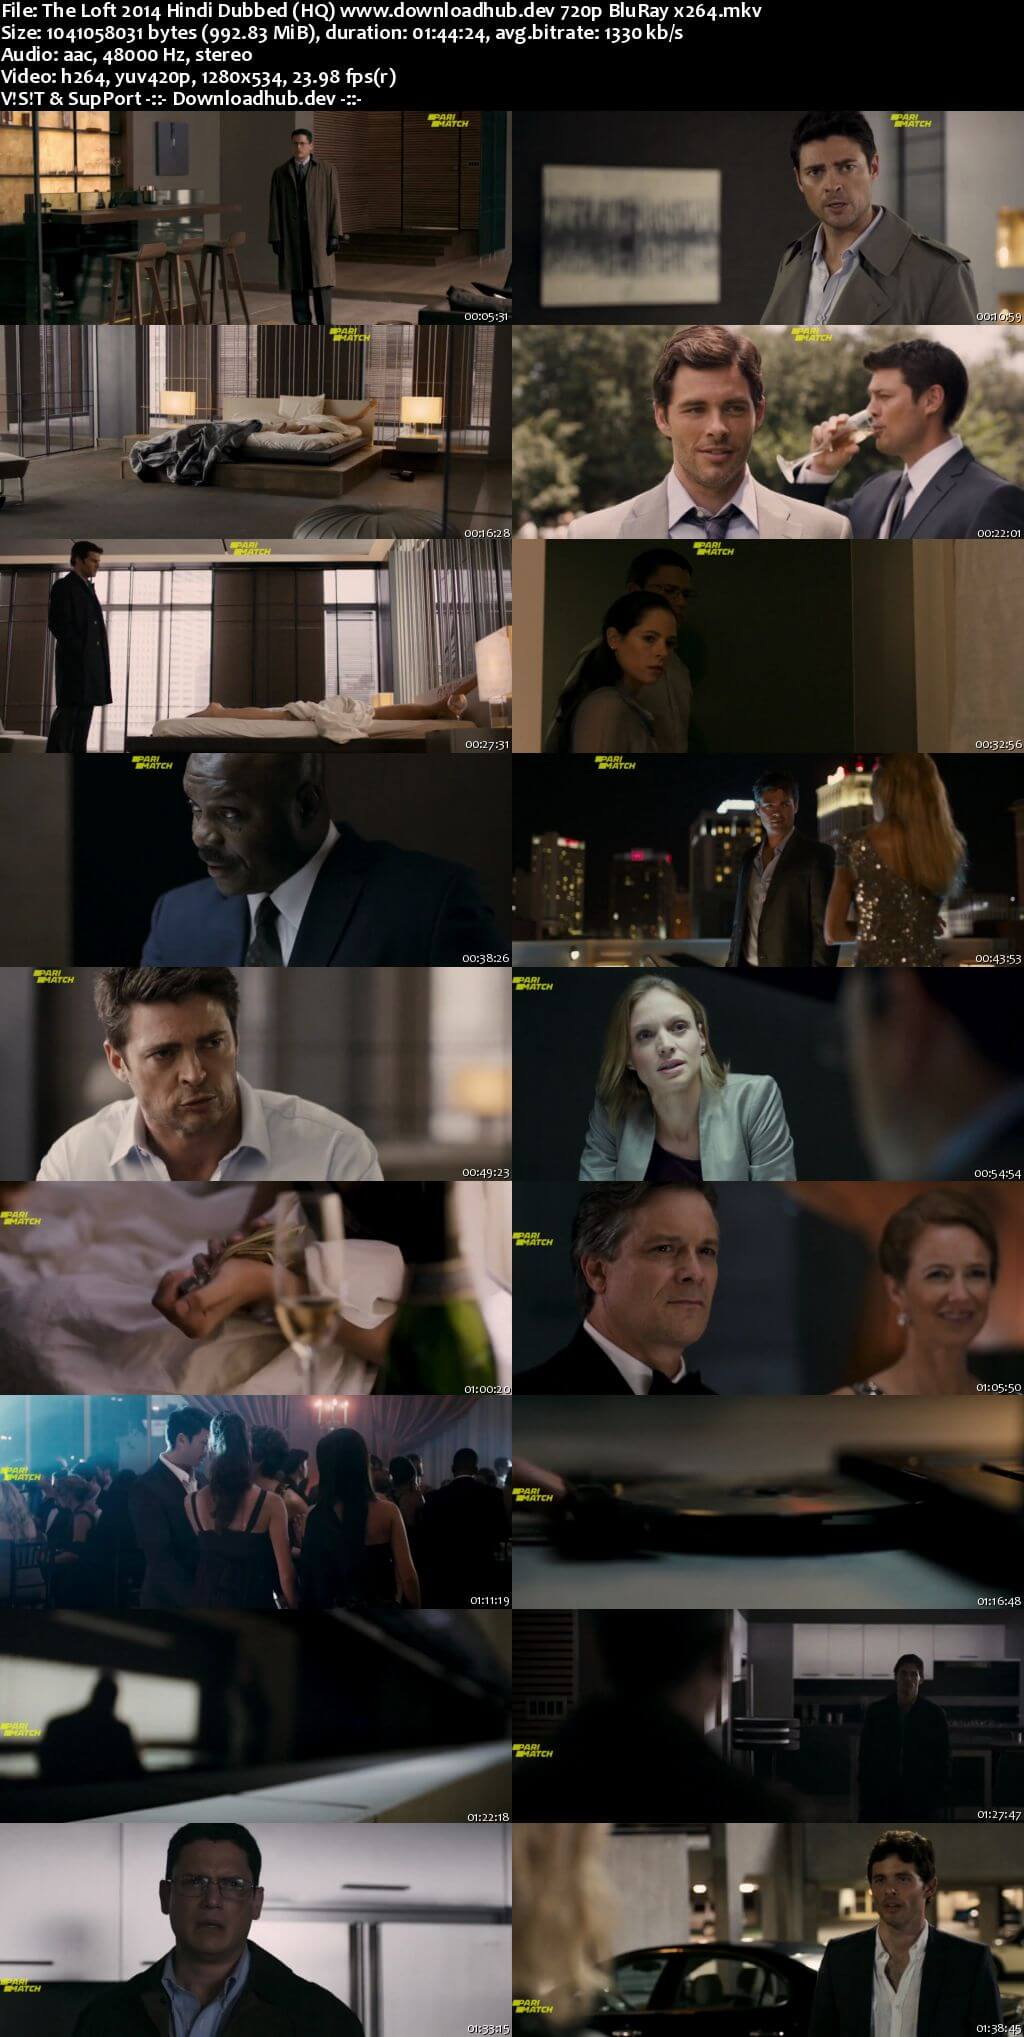 The Loft 2014 Hindi Dubbed (HQ) 720p BluRay x264